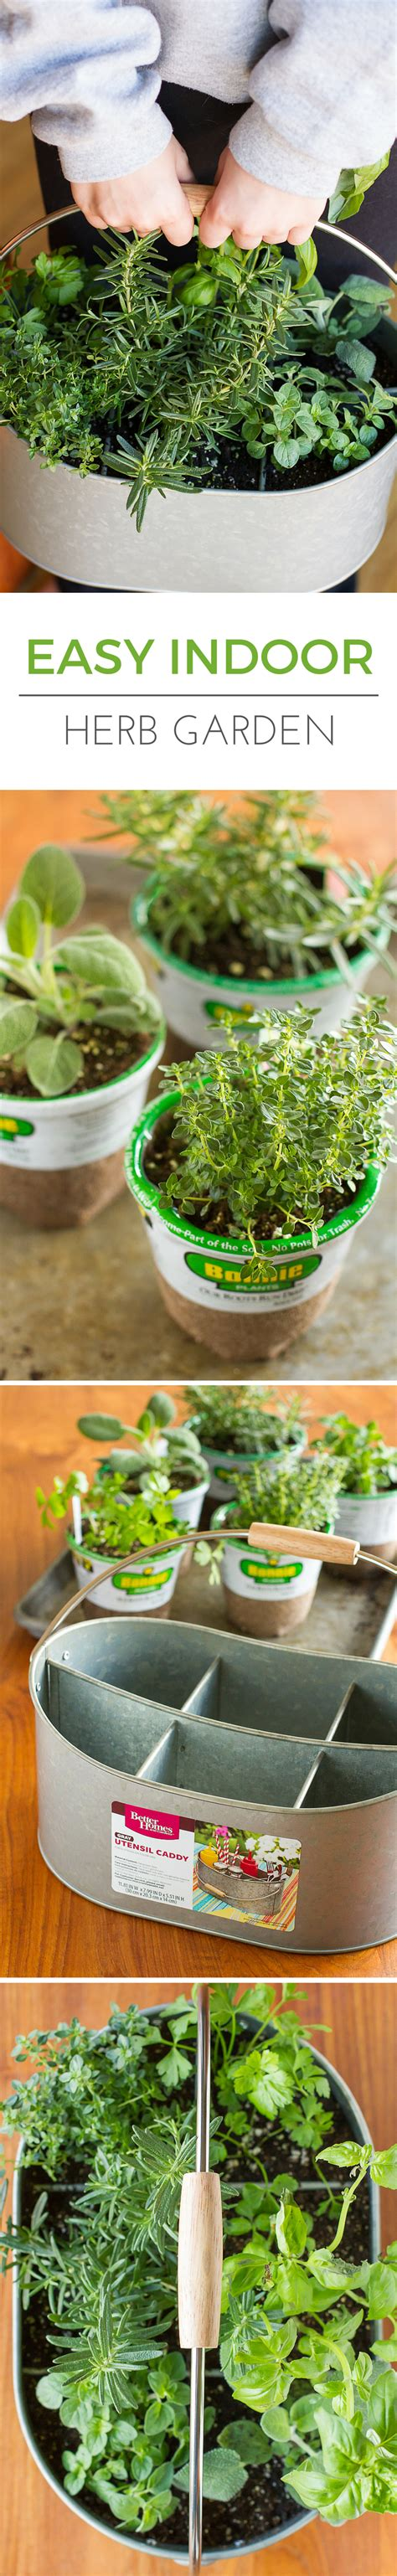 Easy Indoor Herb Garden | easy indoor herb garden that s simple to maintain 10